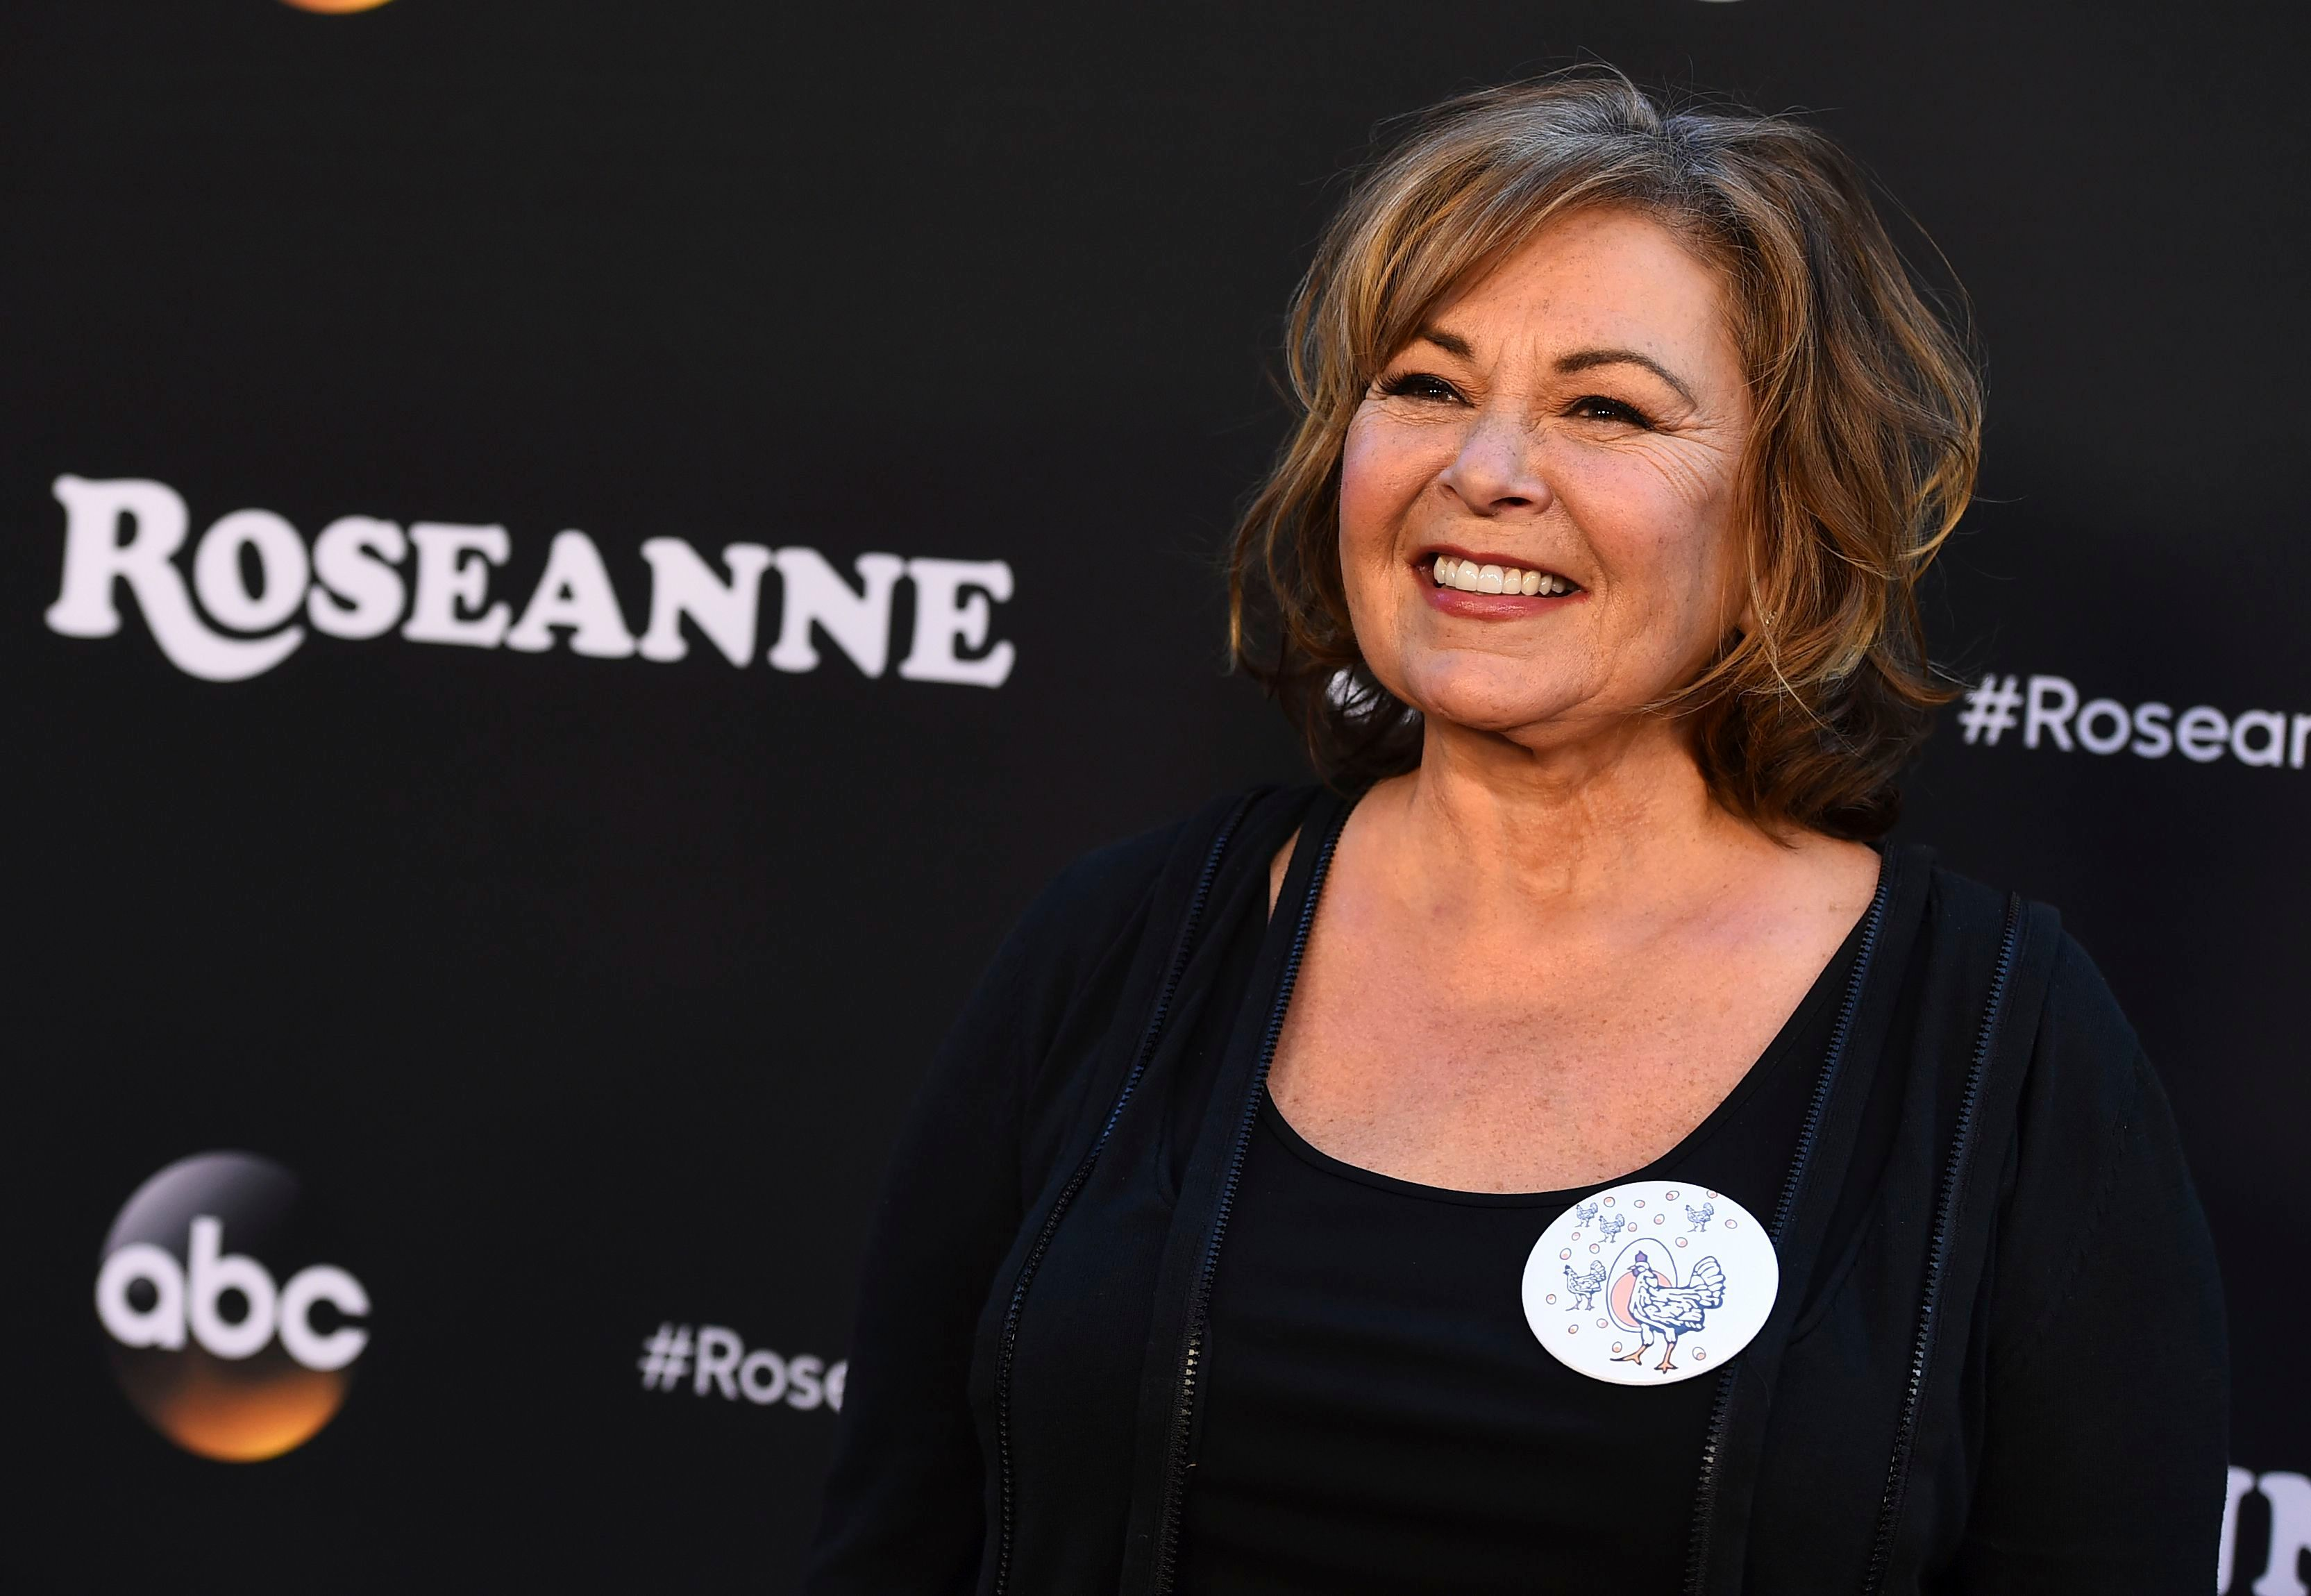 Roseanne Barr Breaks Down in Tears Over Racist Tweet